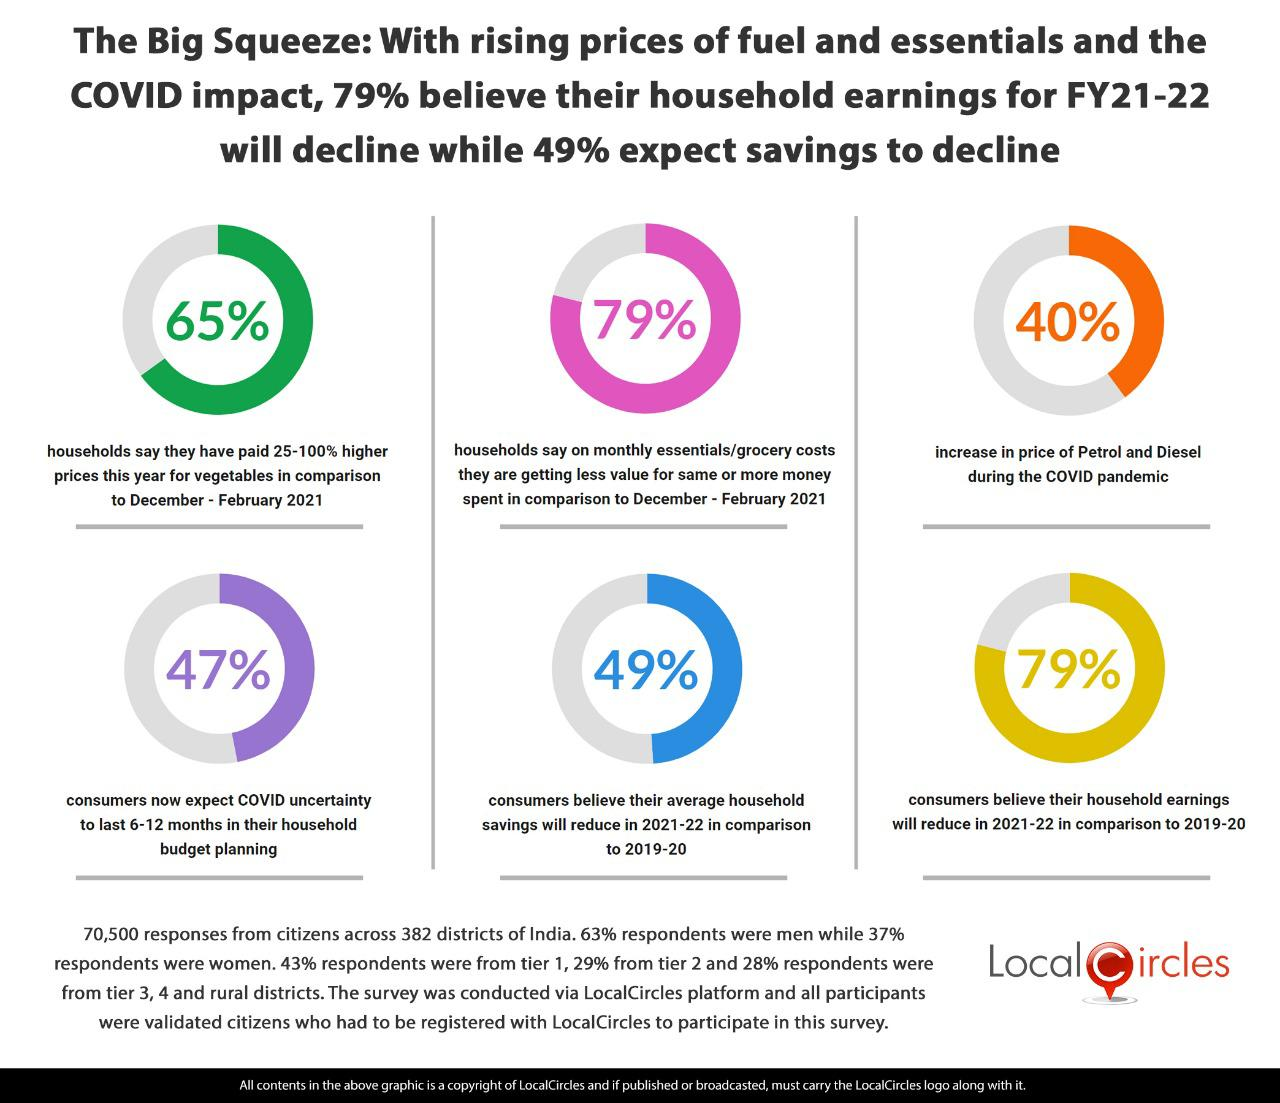 The Big Squeeze: With rising prices of fuel and essentials amidst the COVID-19 impact, 79% consumers believe their household earnings for FY21-22 will decline while 49% expect decline in savings